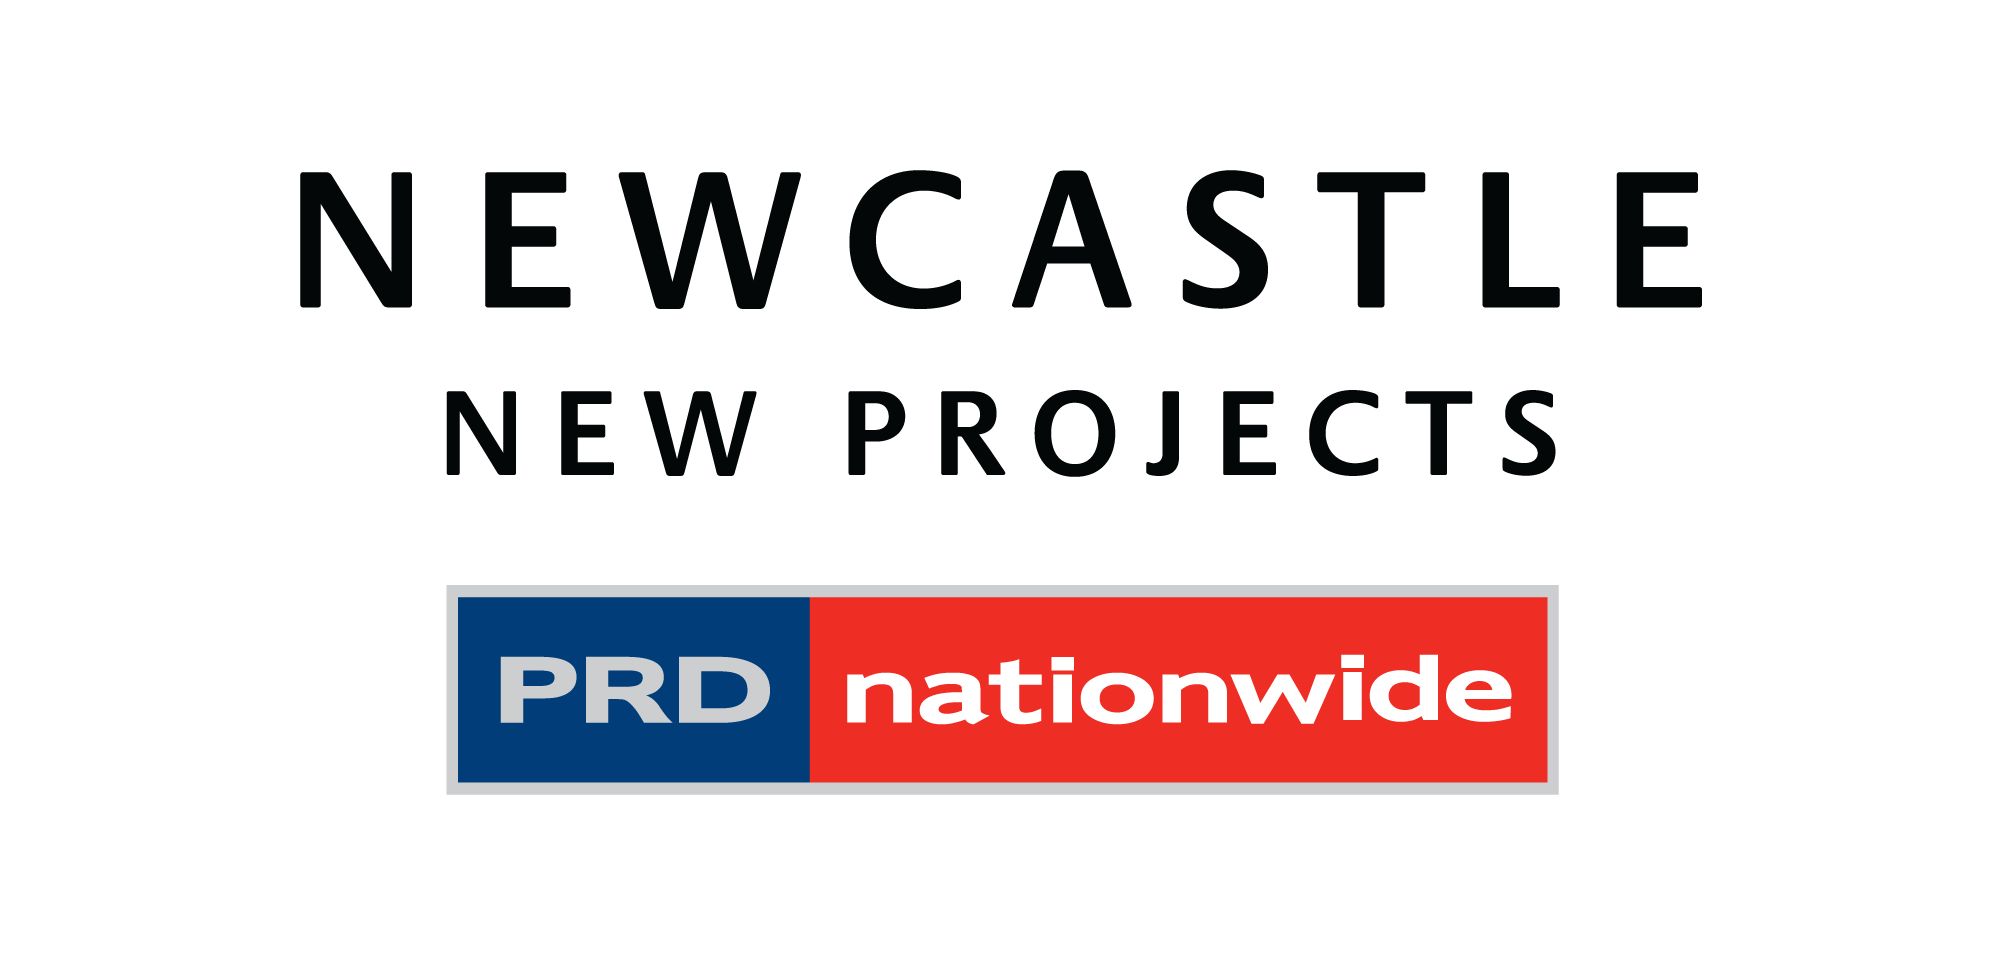 PRDnationwide Newcastle